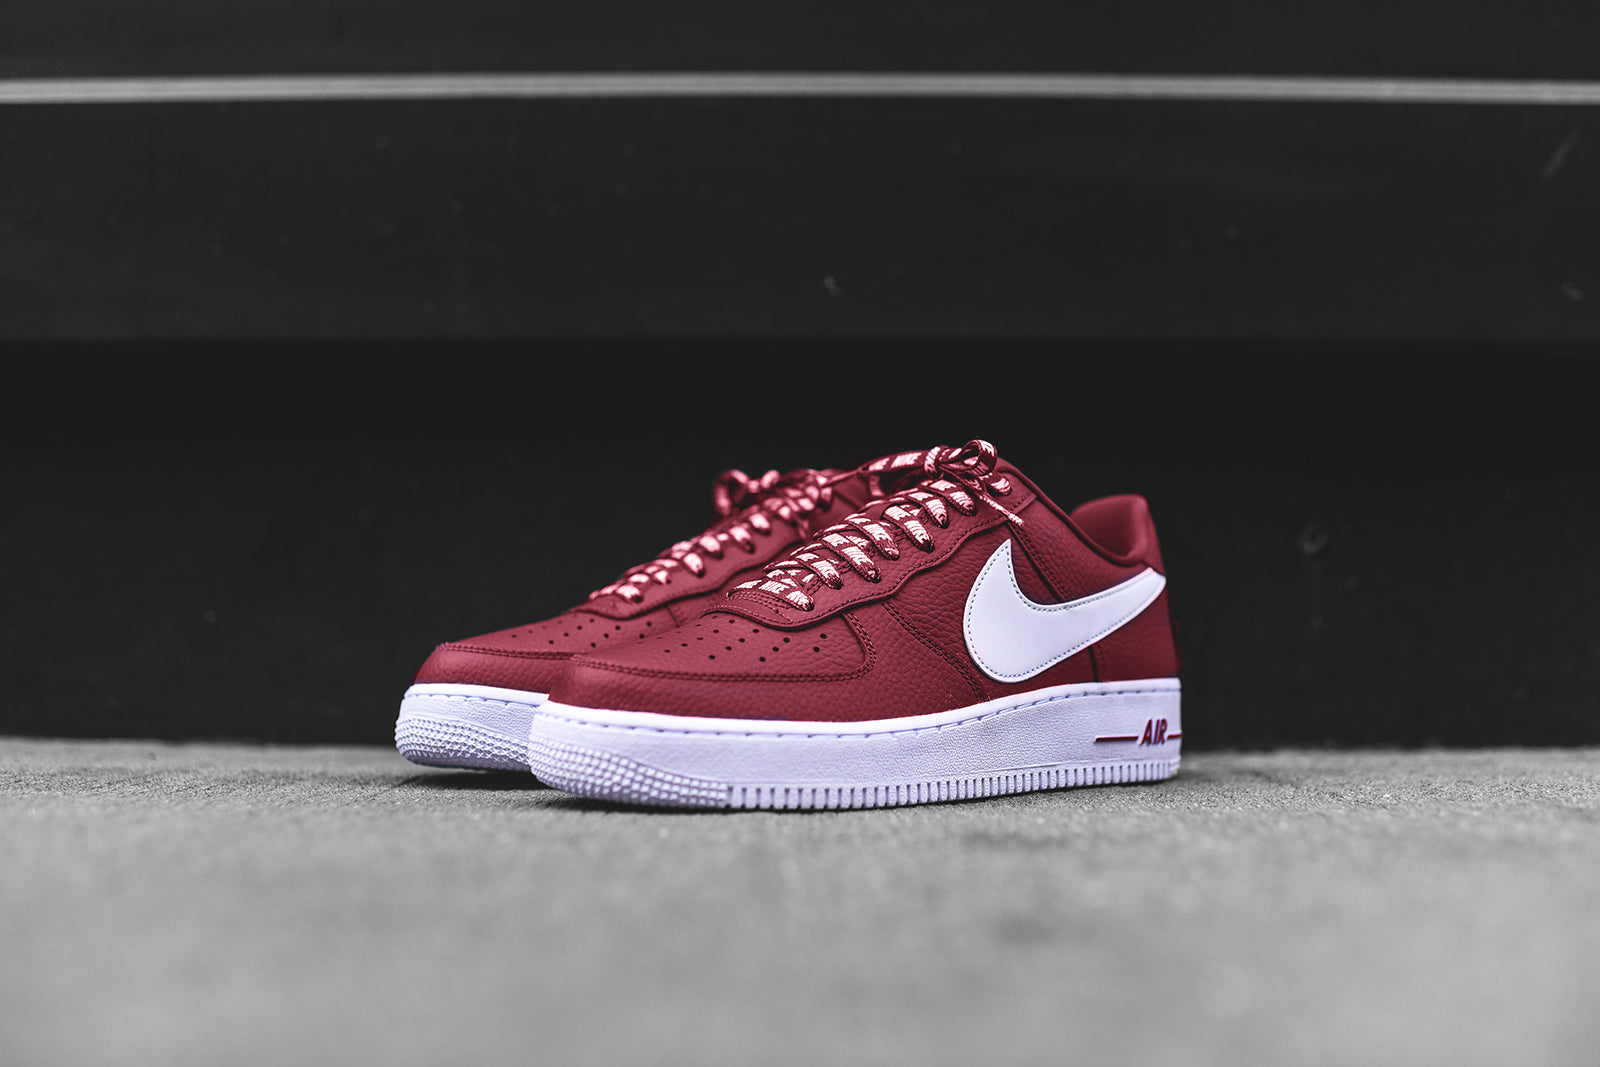 sale nike sneakers air force 1 07 lv8 nba 469bf 05774  where can i buy nike  x nba air force 1 lv8 statement game pack 22e10 437c6 8ad5cfbf7